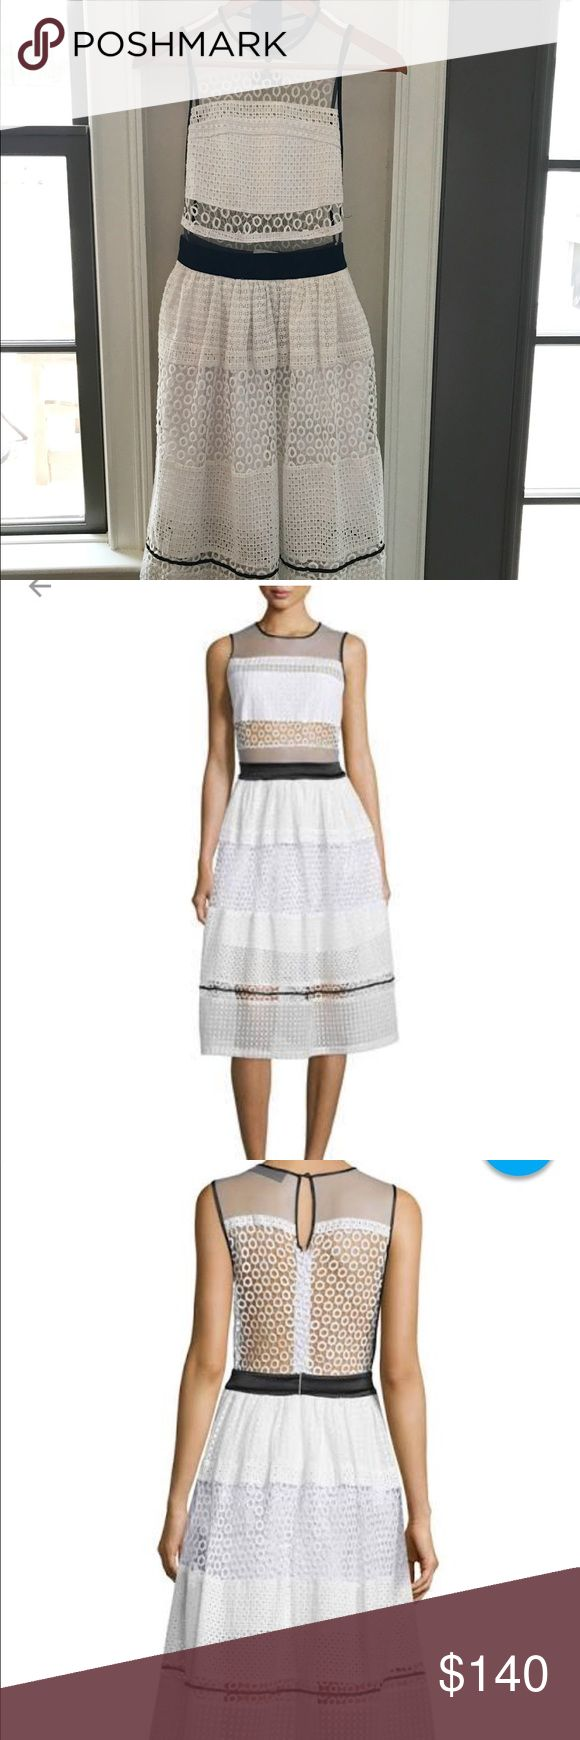 Kendall + Kylie Black and White Sheer Panel Dress Kendall + Kylie sheer panel dress in black and white, sized small. Never worn, with tags attached. Looks like Self Portrait. I got this dress for graduation in the hopes that I could fit into it but I didn't lose any weight... 💁🏻 Kendall + Kylie Dresses Midi